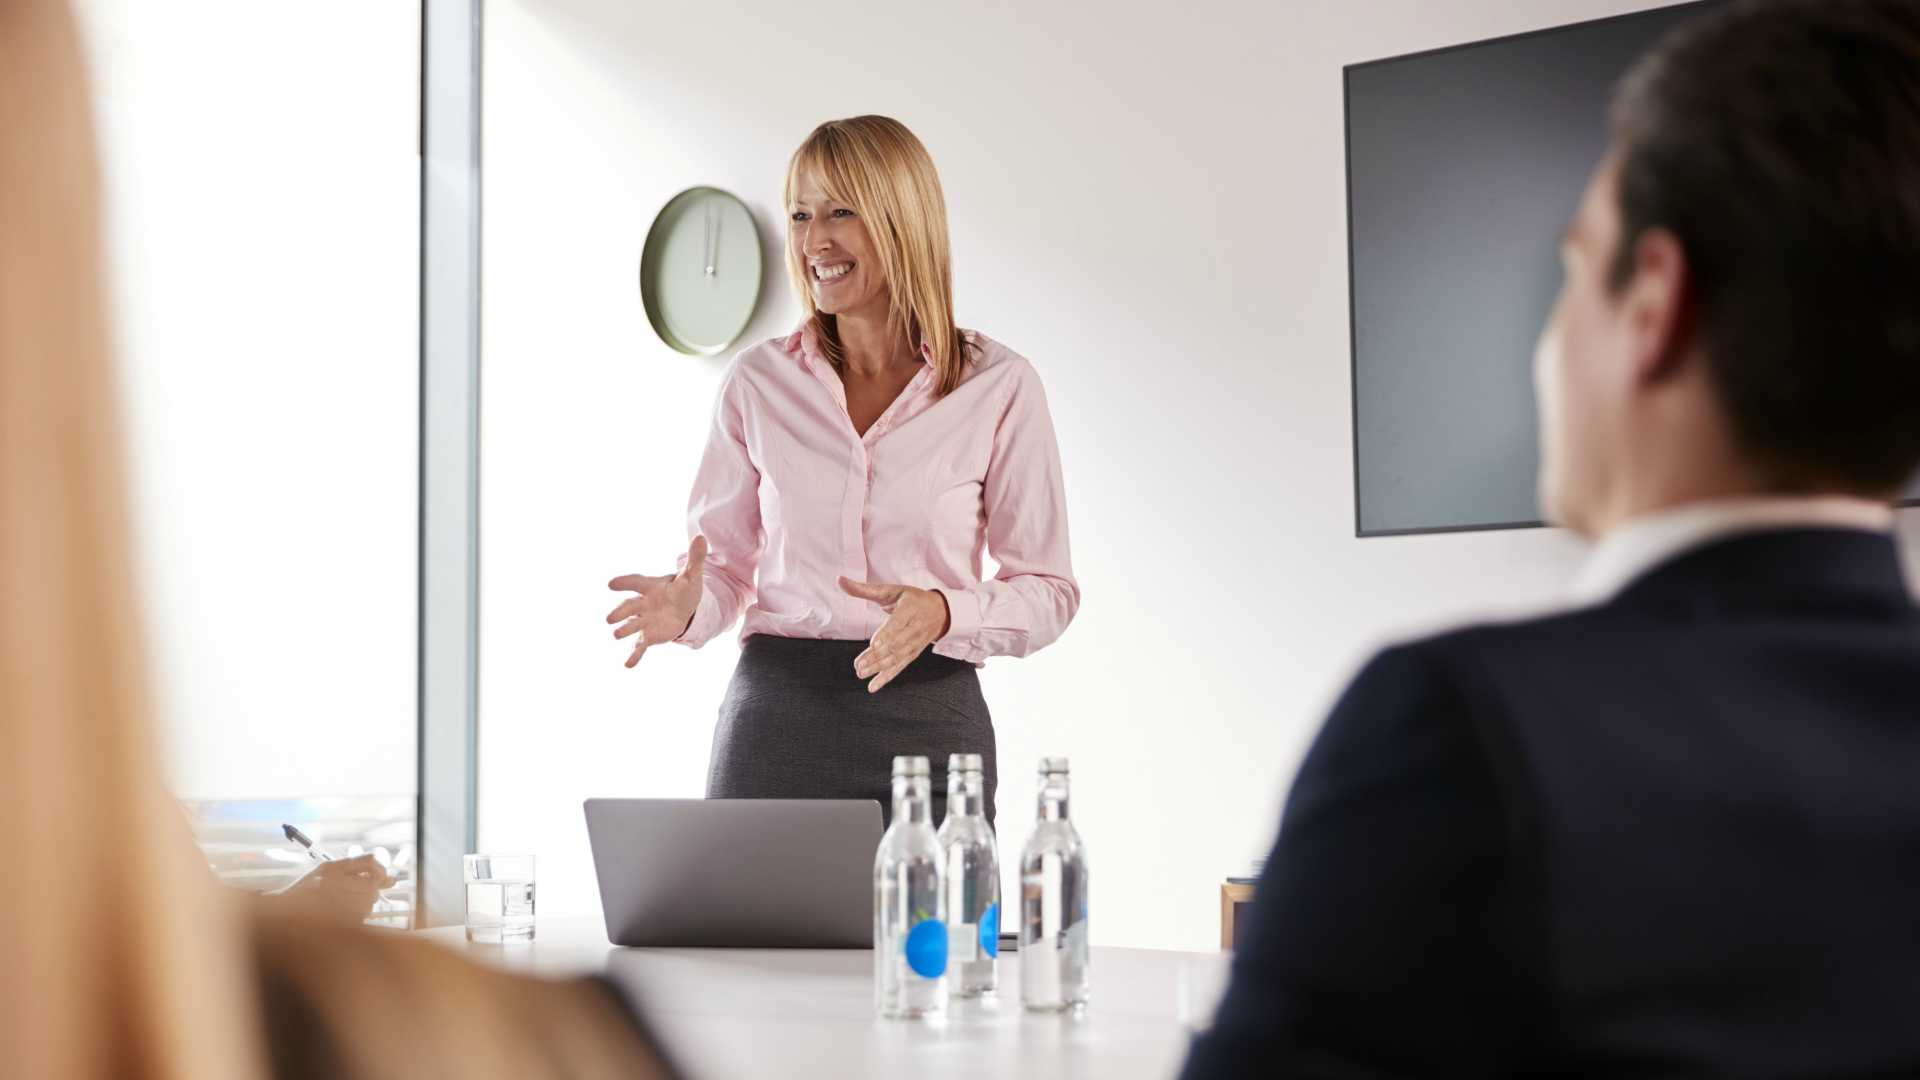 Leadership Training - For the Dynamic Business Environment